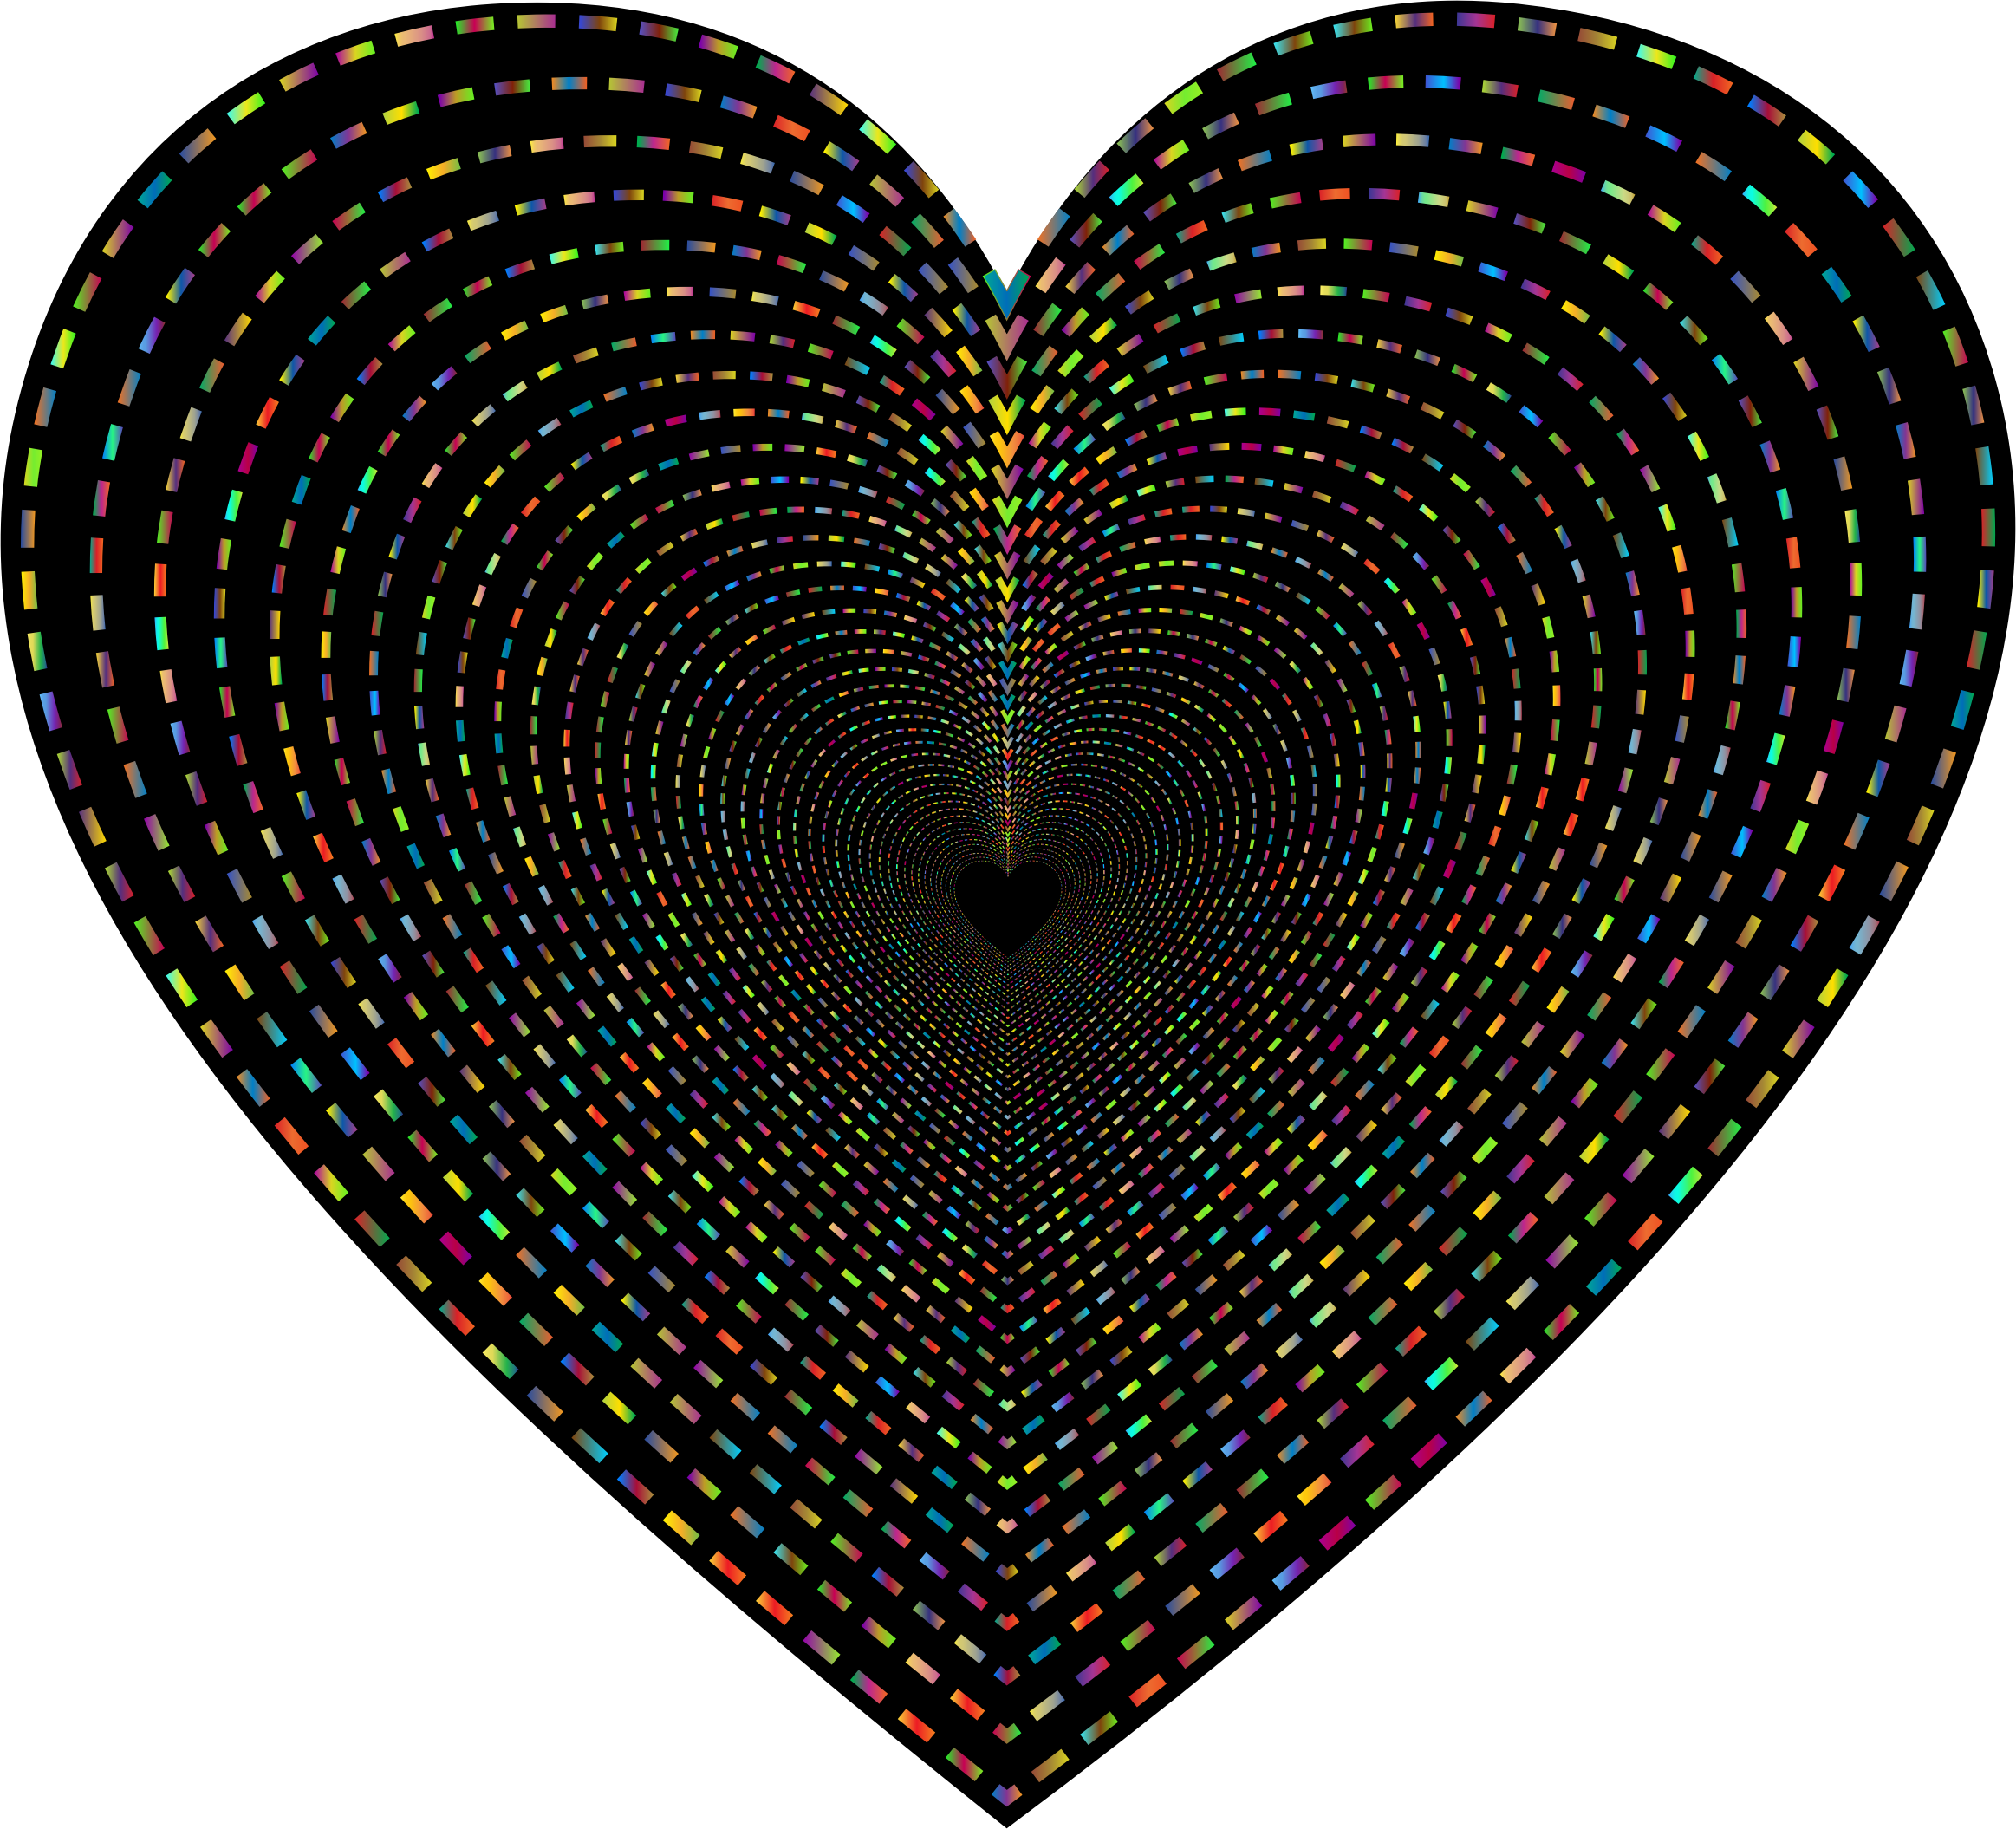 Dashed Line Art Heart Tunnel 2 by GDJ